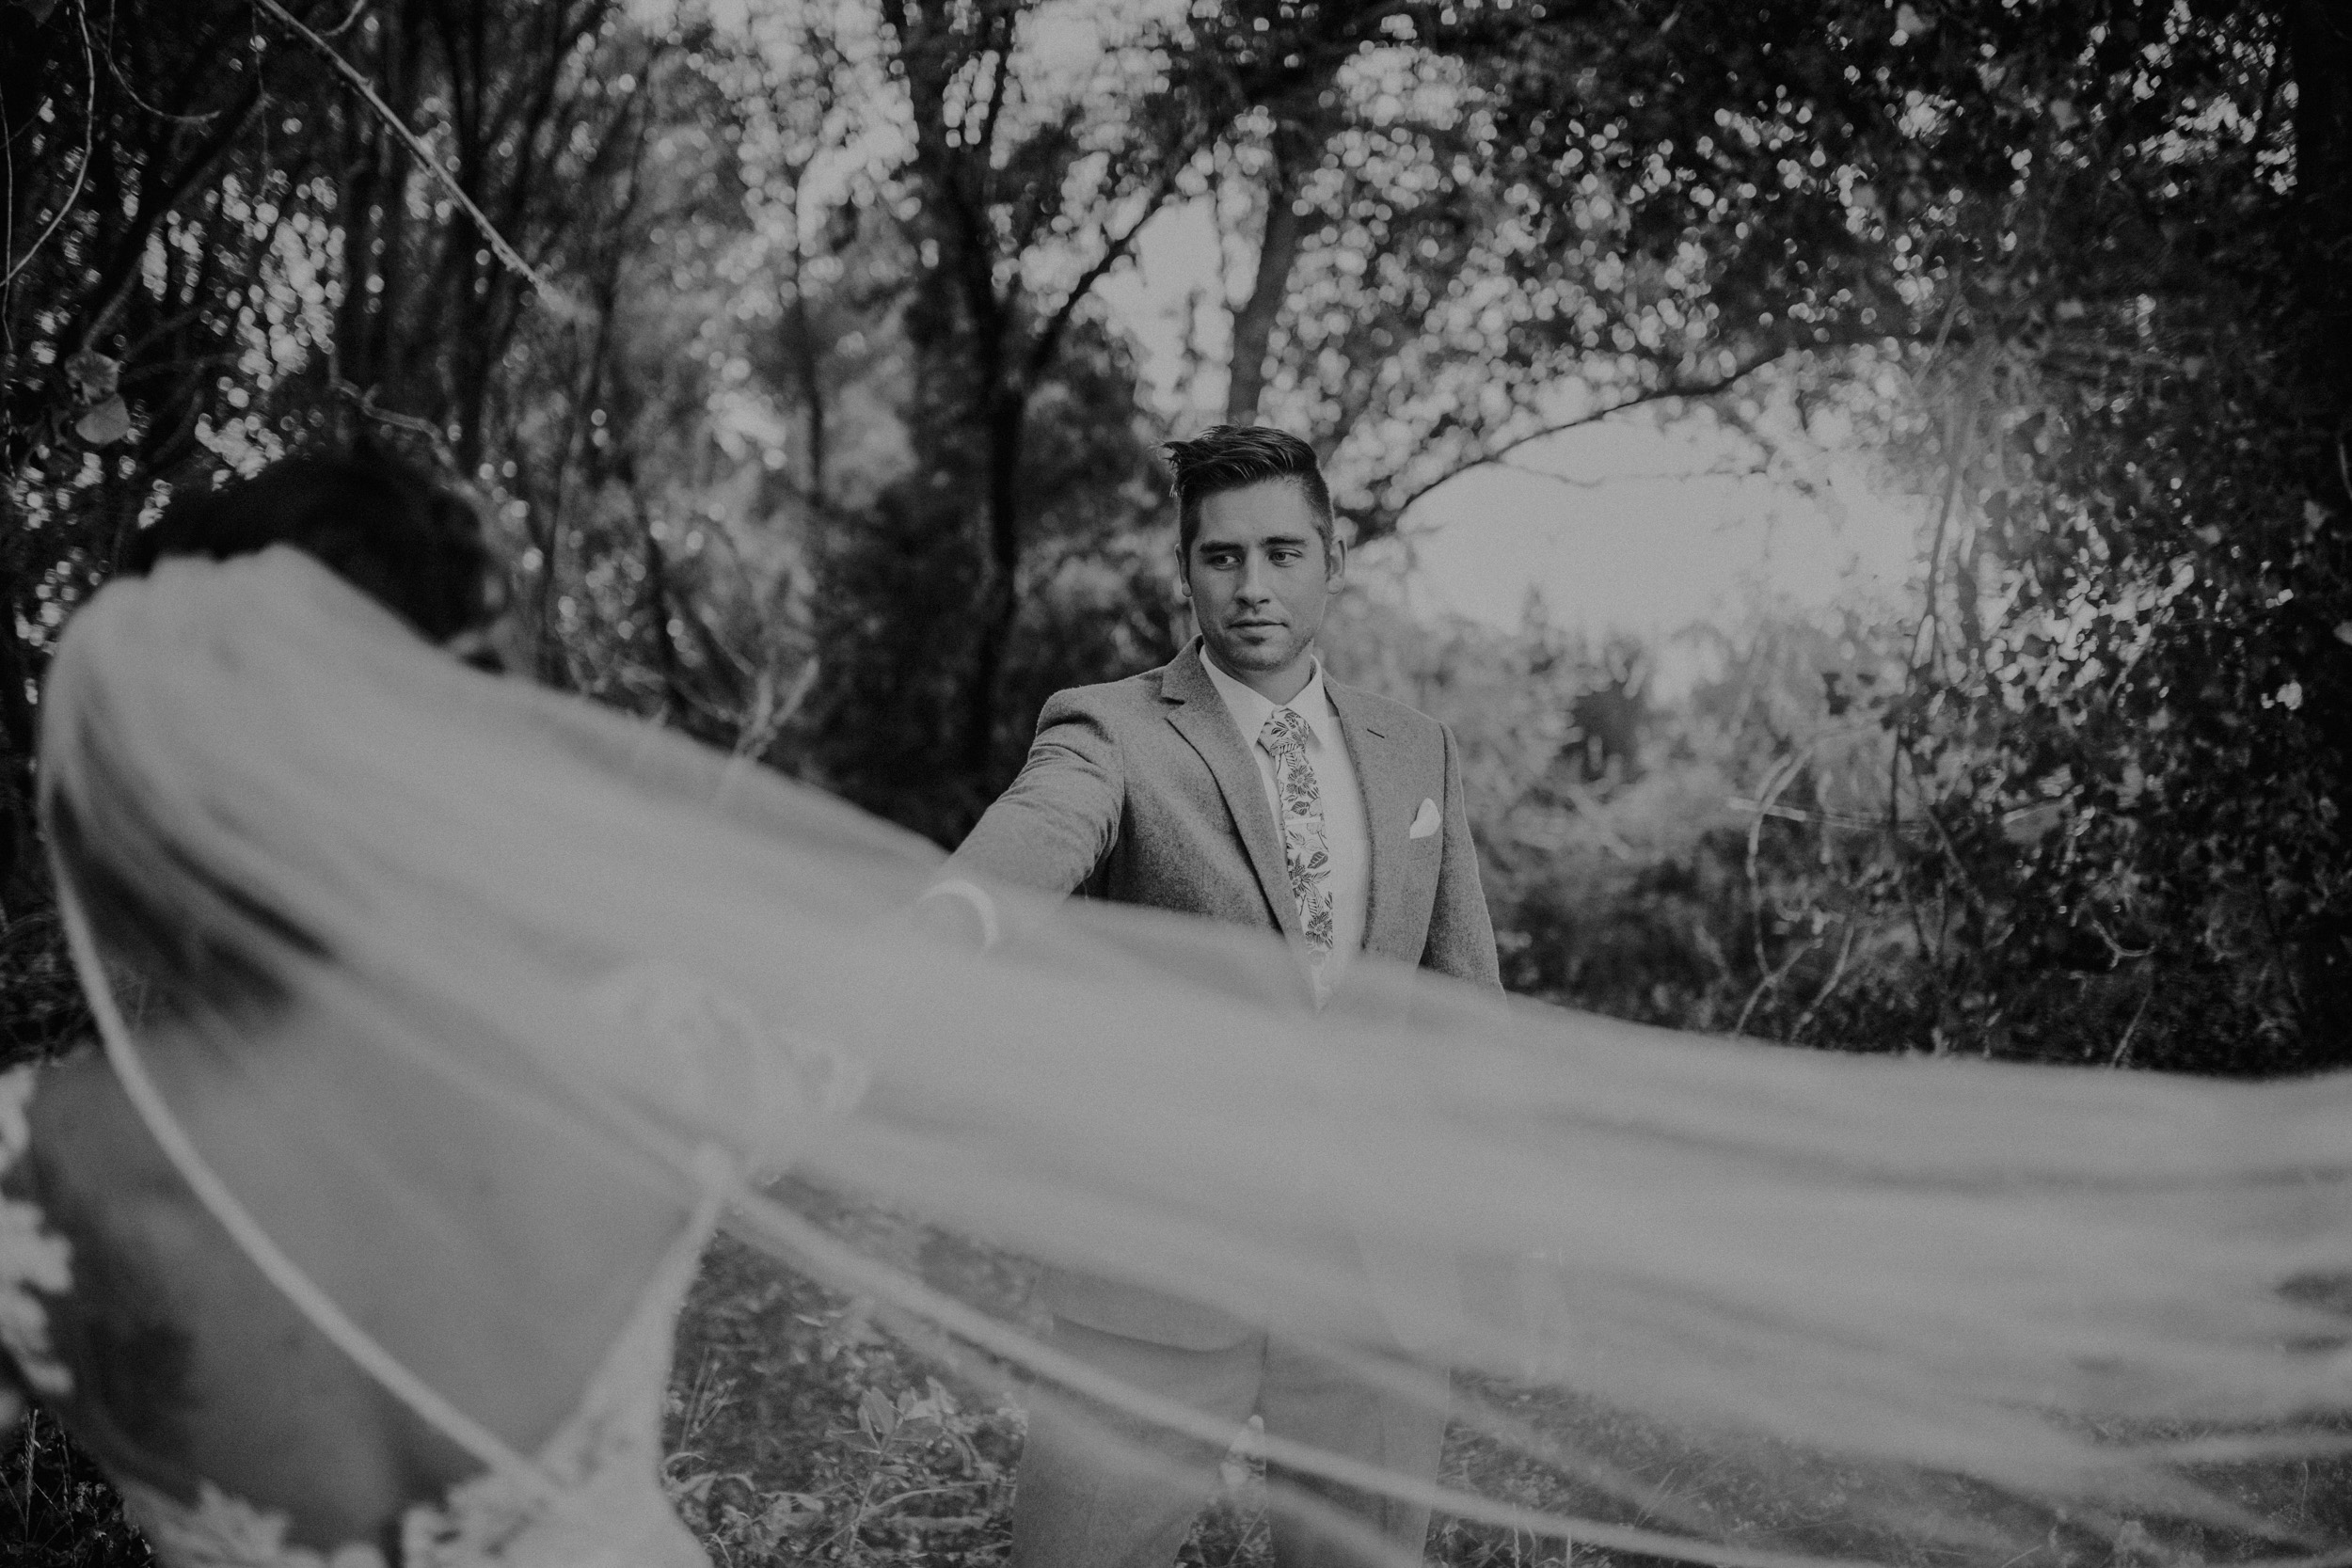 Groom looking at bride with a vail in a grassy field